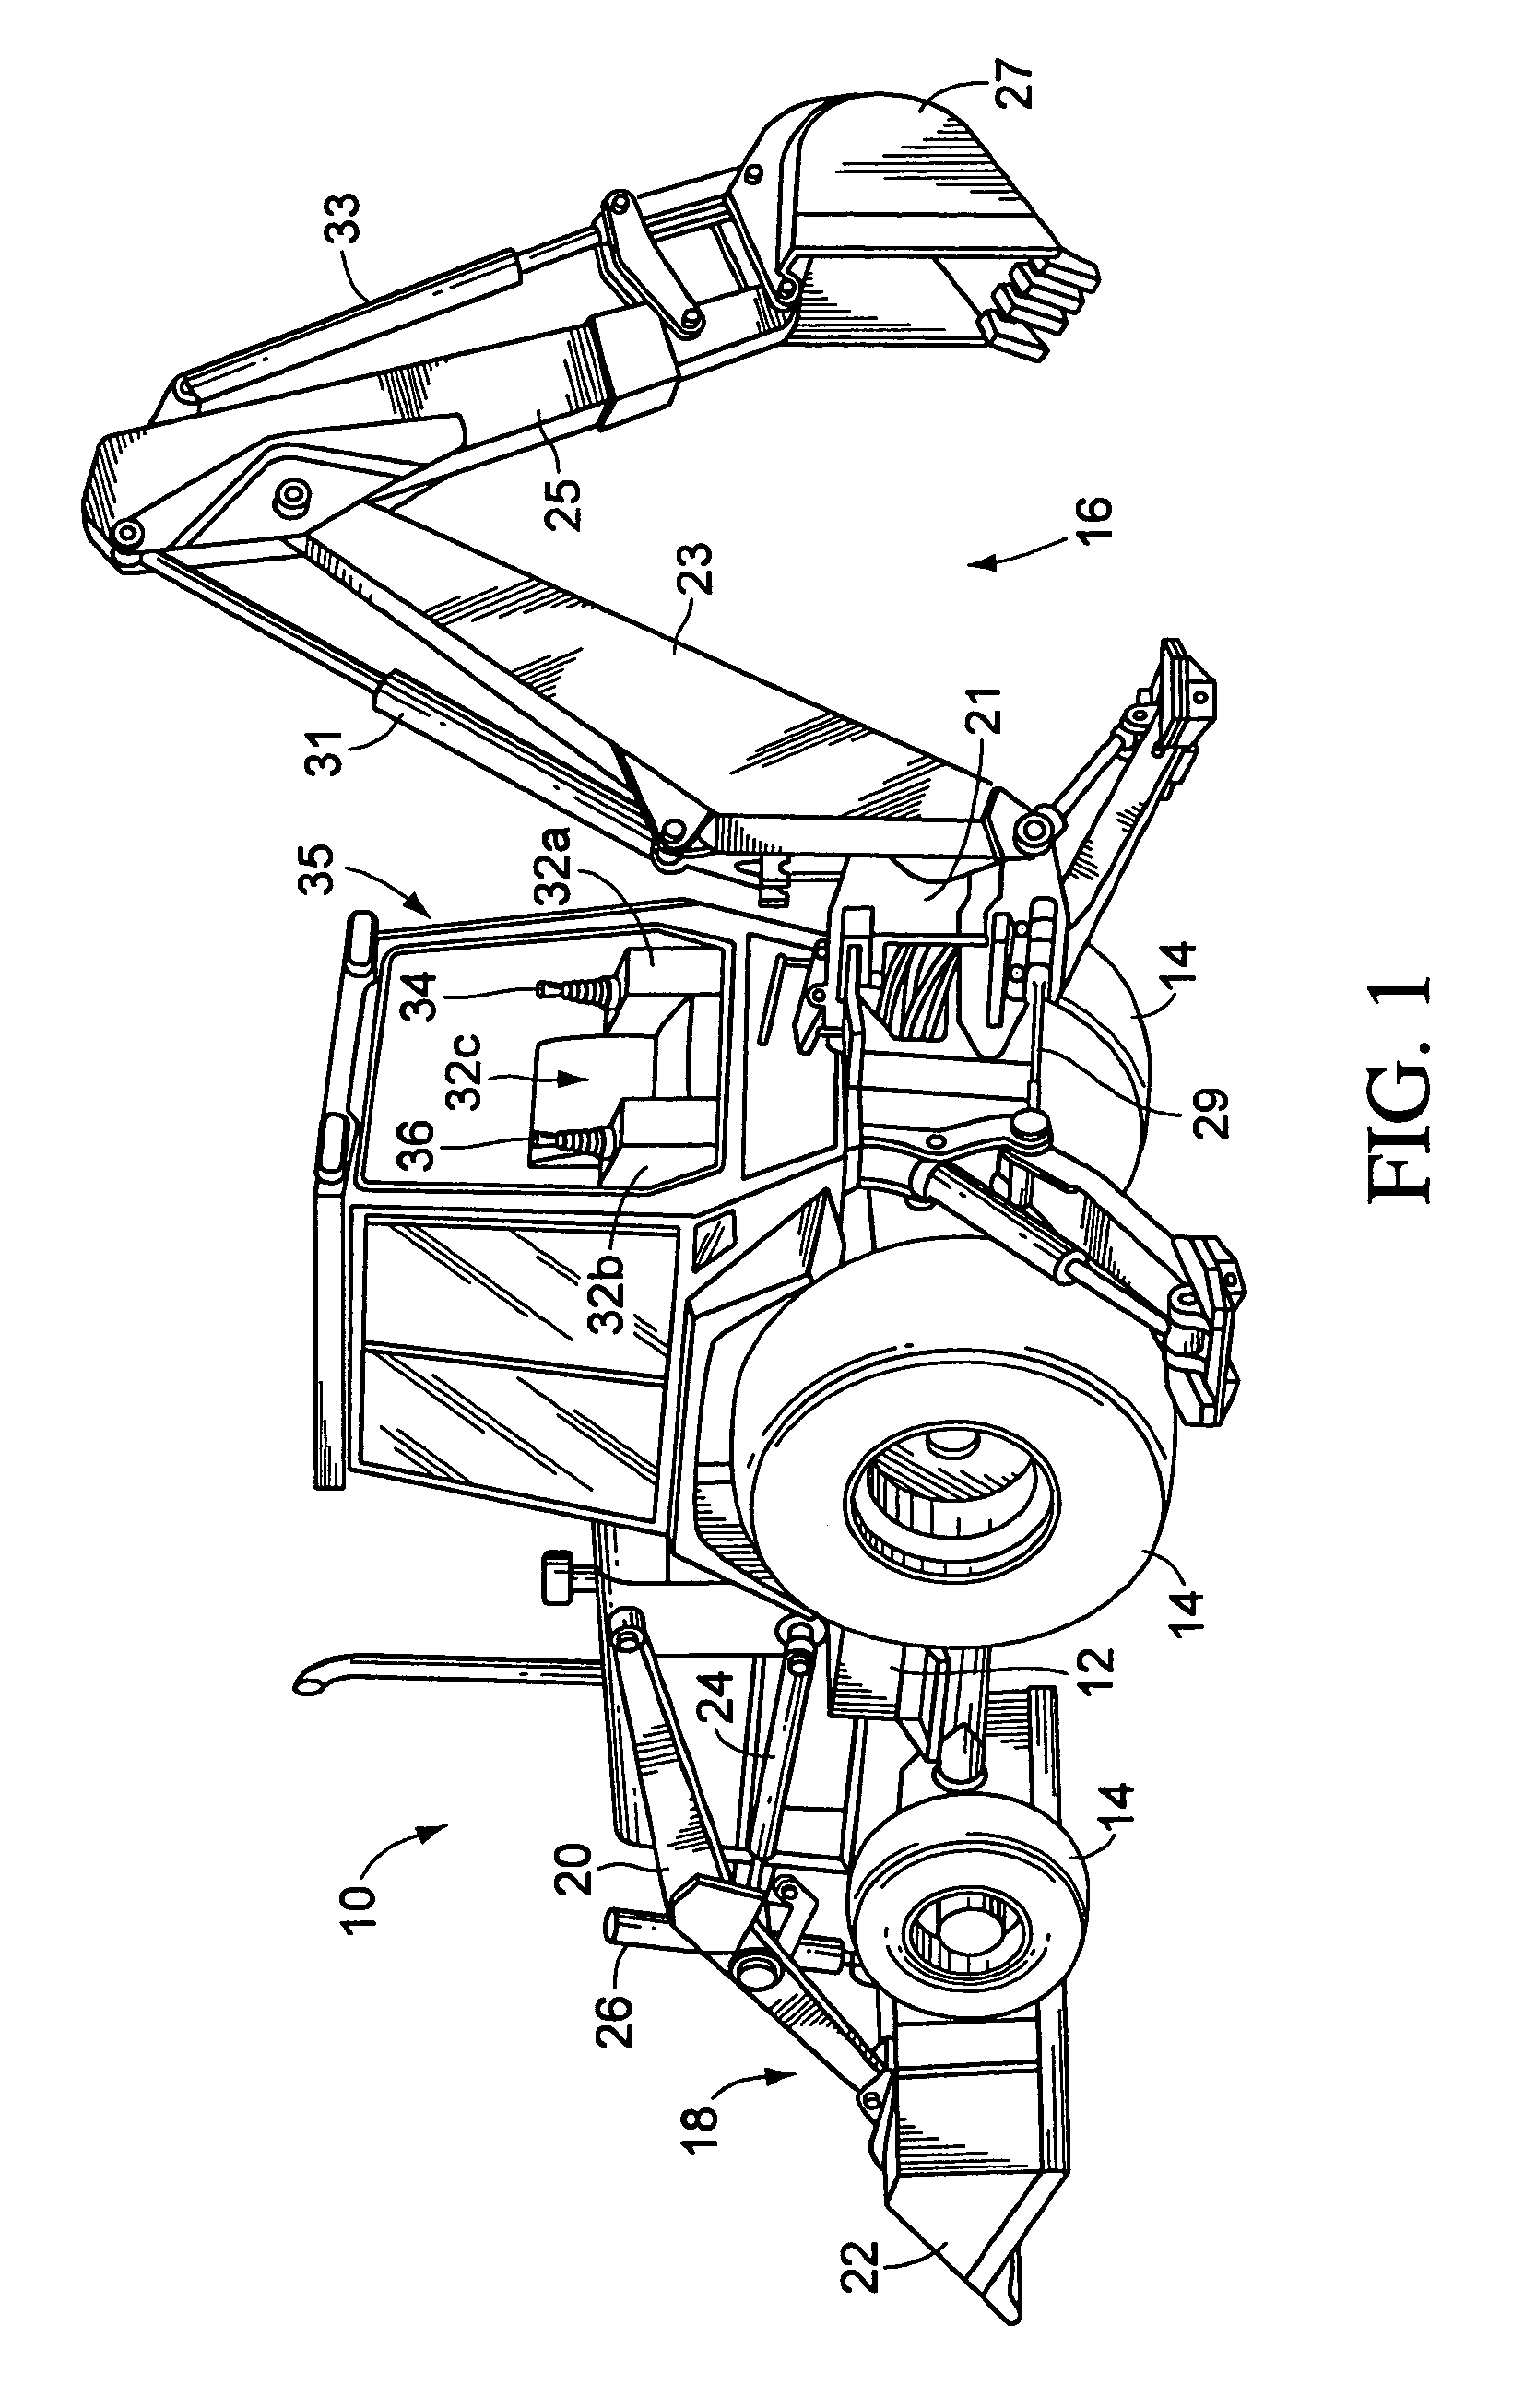 For A Jd 410b Wiring Diagram Patent Us7036248 Pattern Select Valve For Control Levers